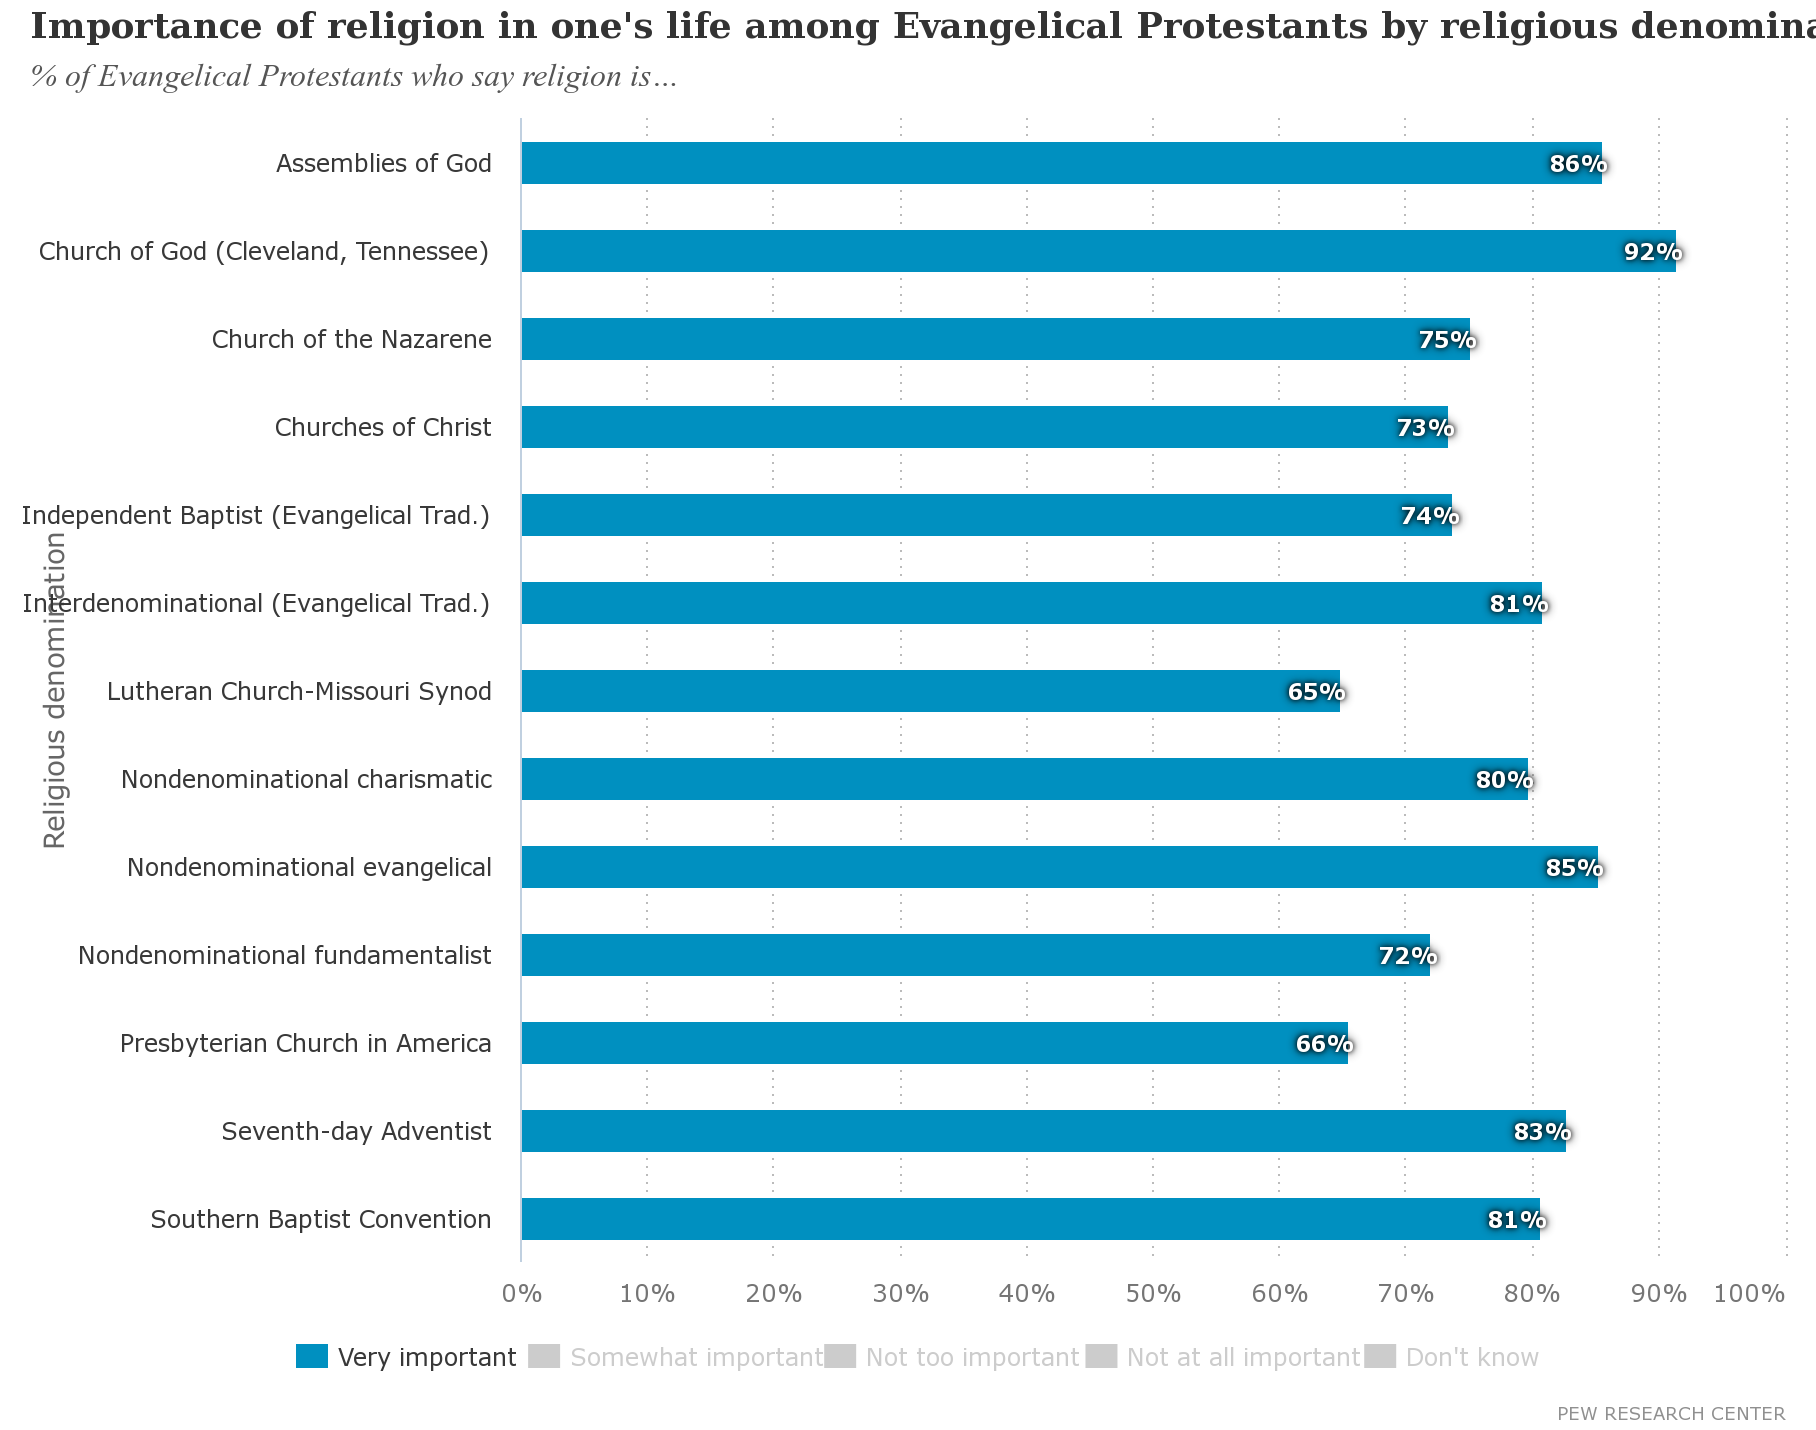 Importance of religion in one's life among Evangelical Protestants by religious denomination (2014)